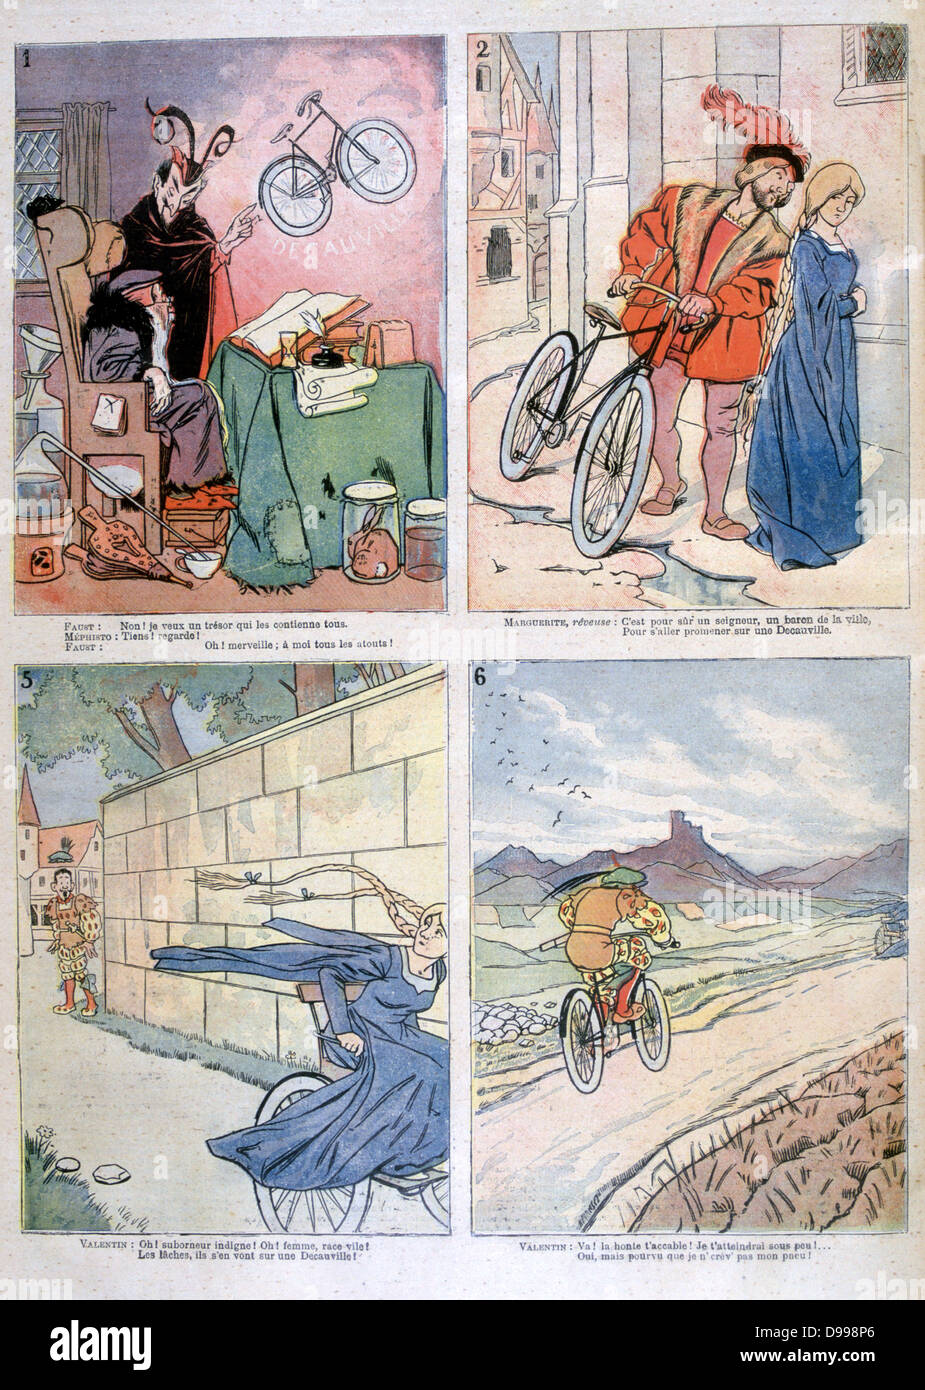 Bicycle applied to the Legend of Faust: From - Temptation by Mephistopheles, A rejuvinated Strauss courting Marguerite, - Stock Image